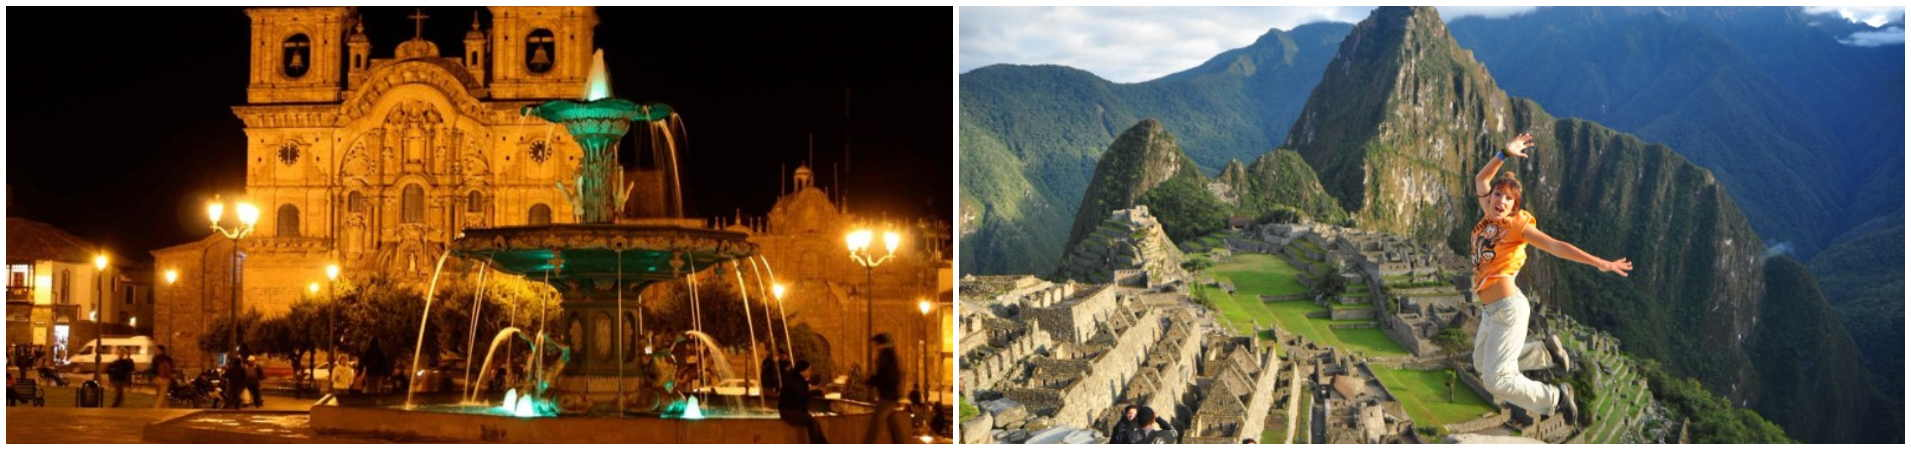 Tours Cusco Maravilloso 4 dias qori inka travel agency peru